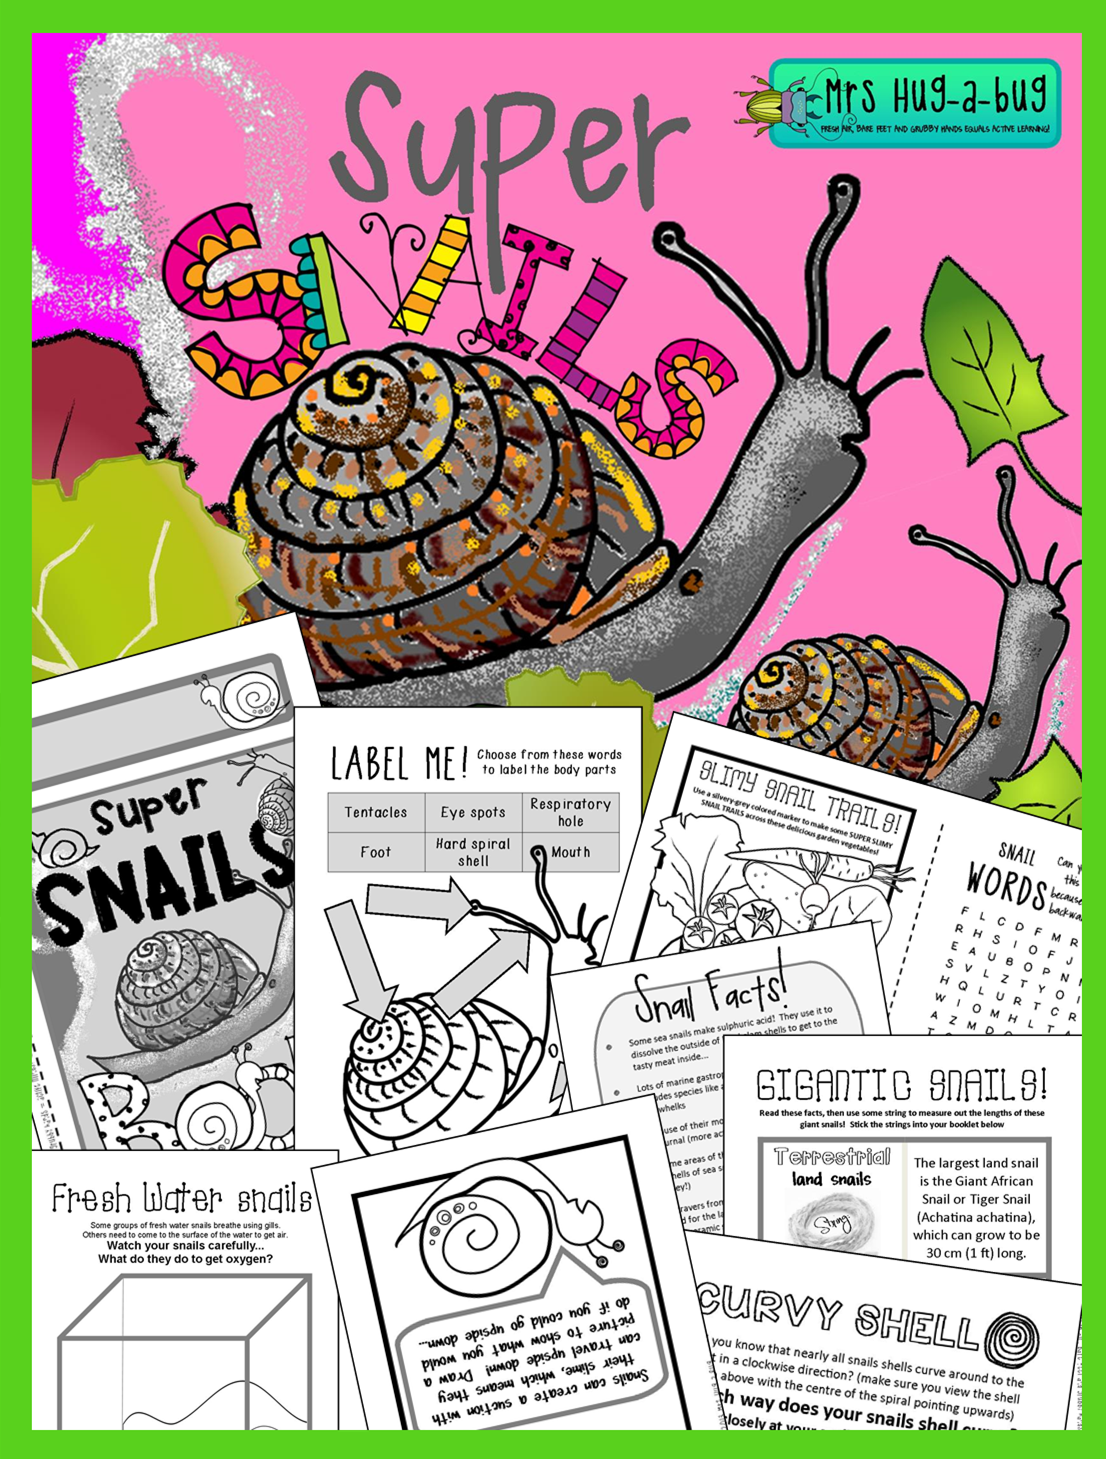 Snails Fun Amp Facts About Terrestrial Amp Aquatic Snails